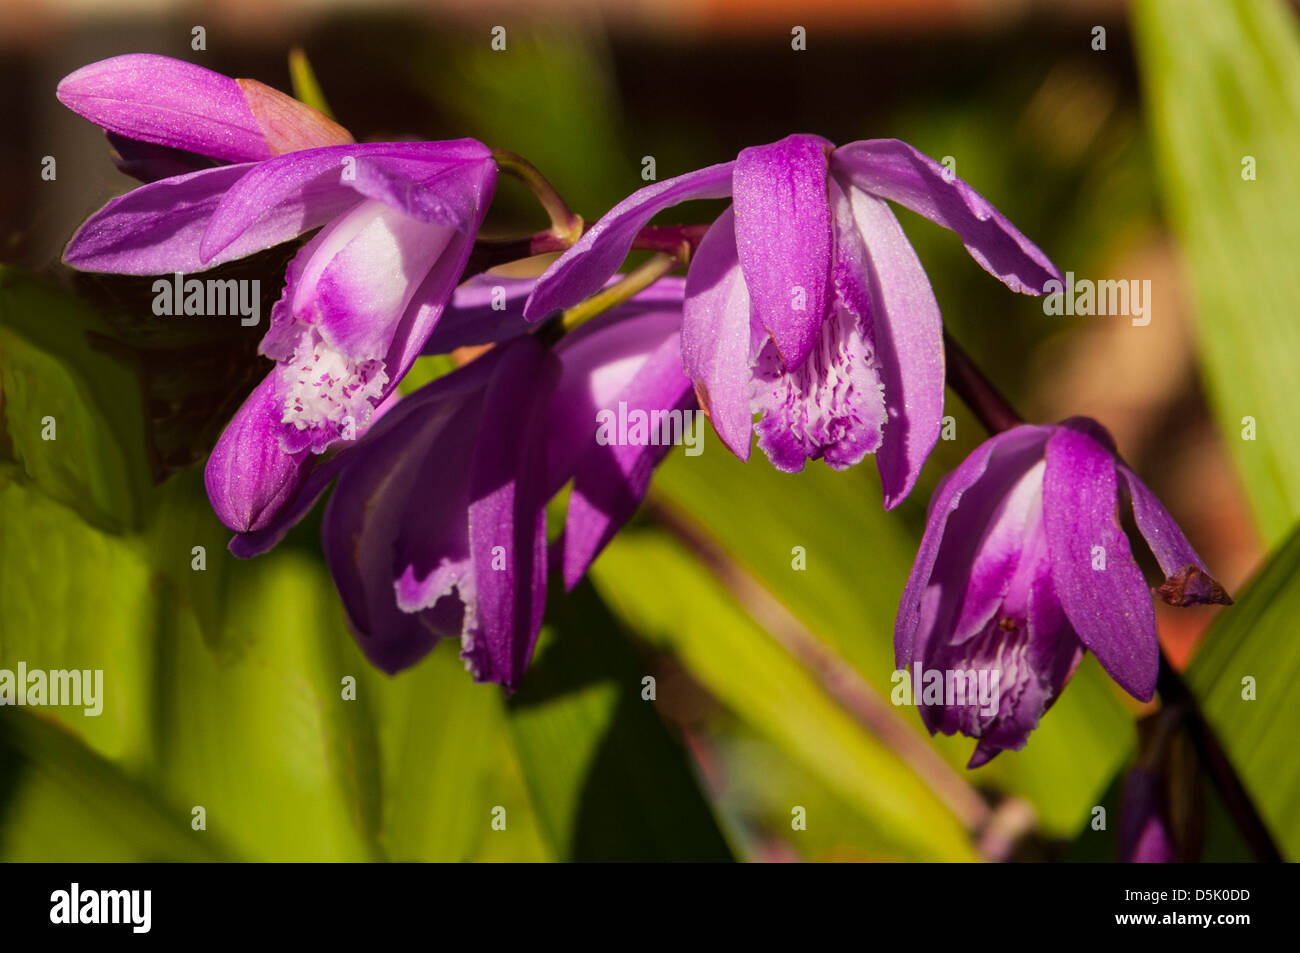 Chinese Orchid Bloom Stockfotos & Chinese Orchid Bloom Bilder - Alamy